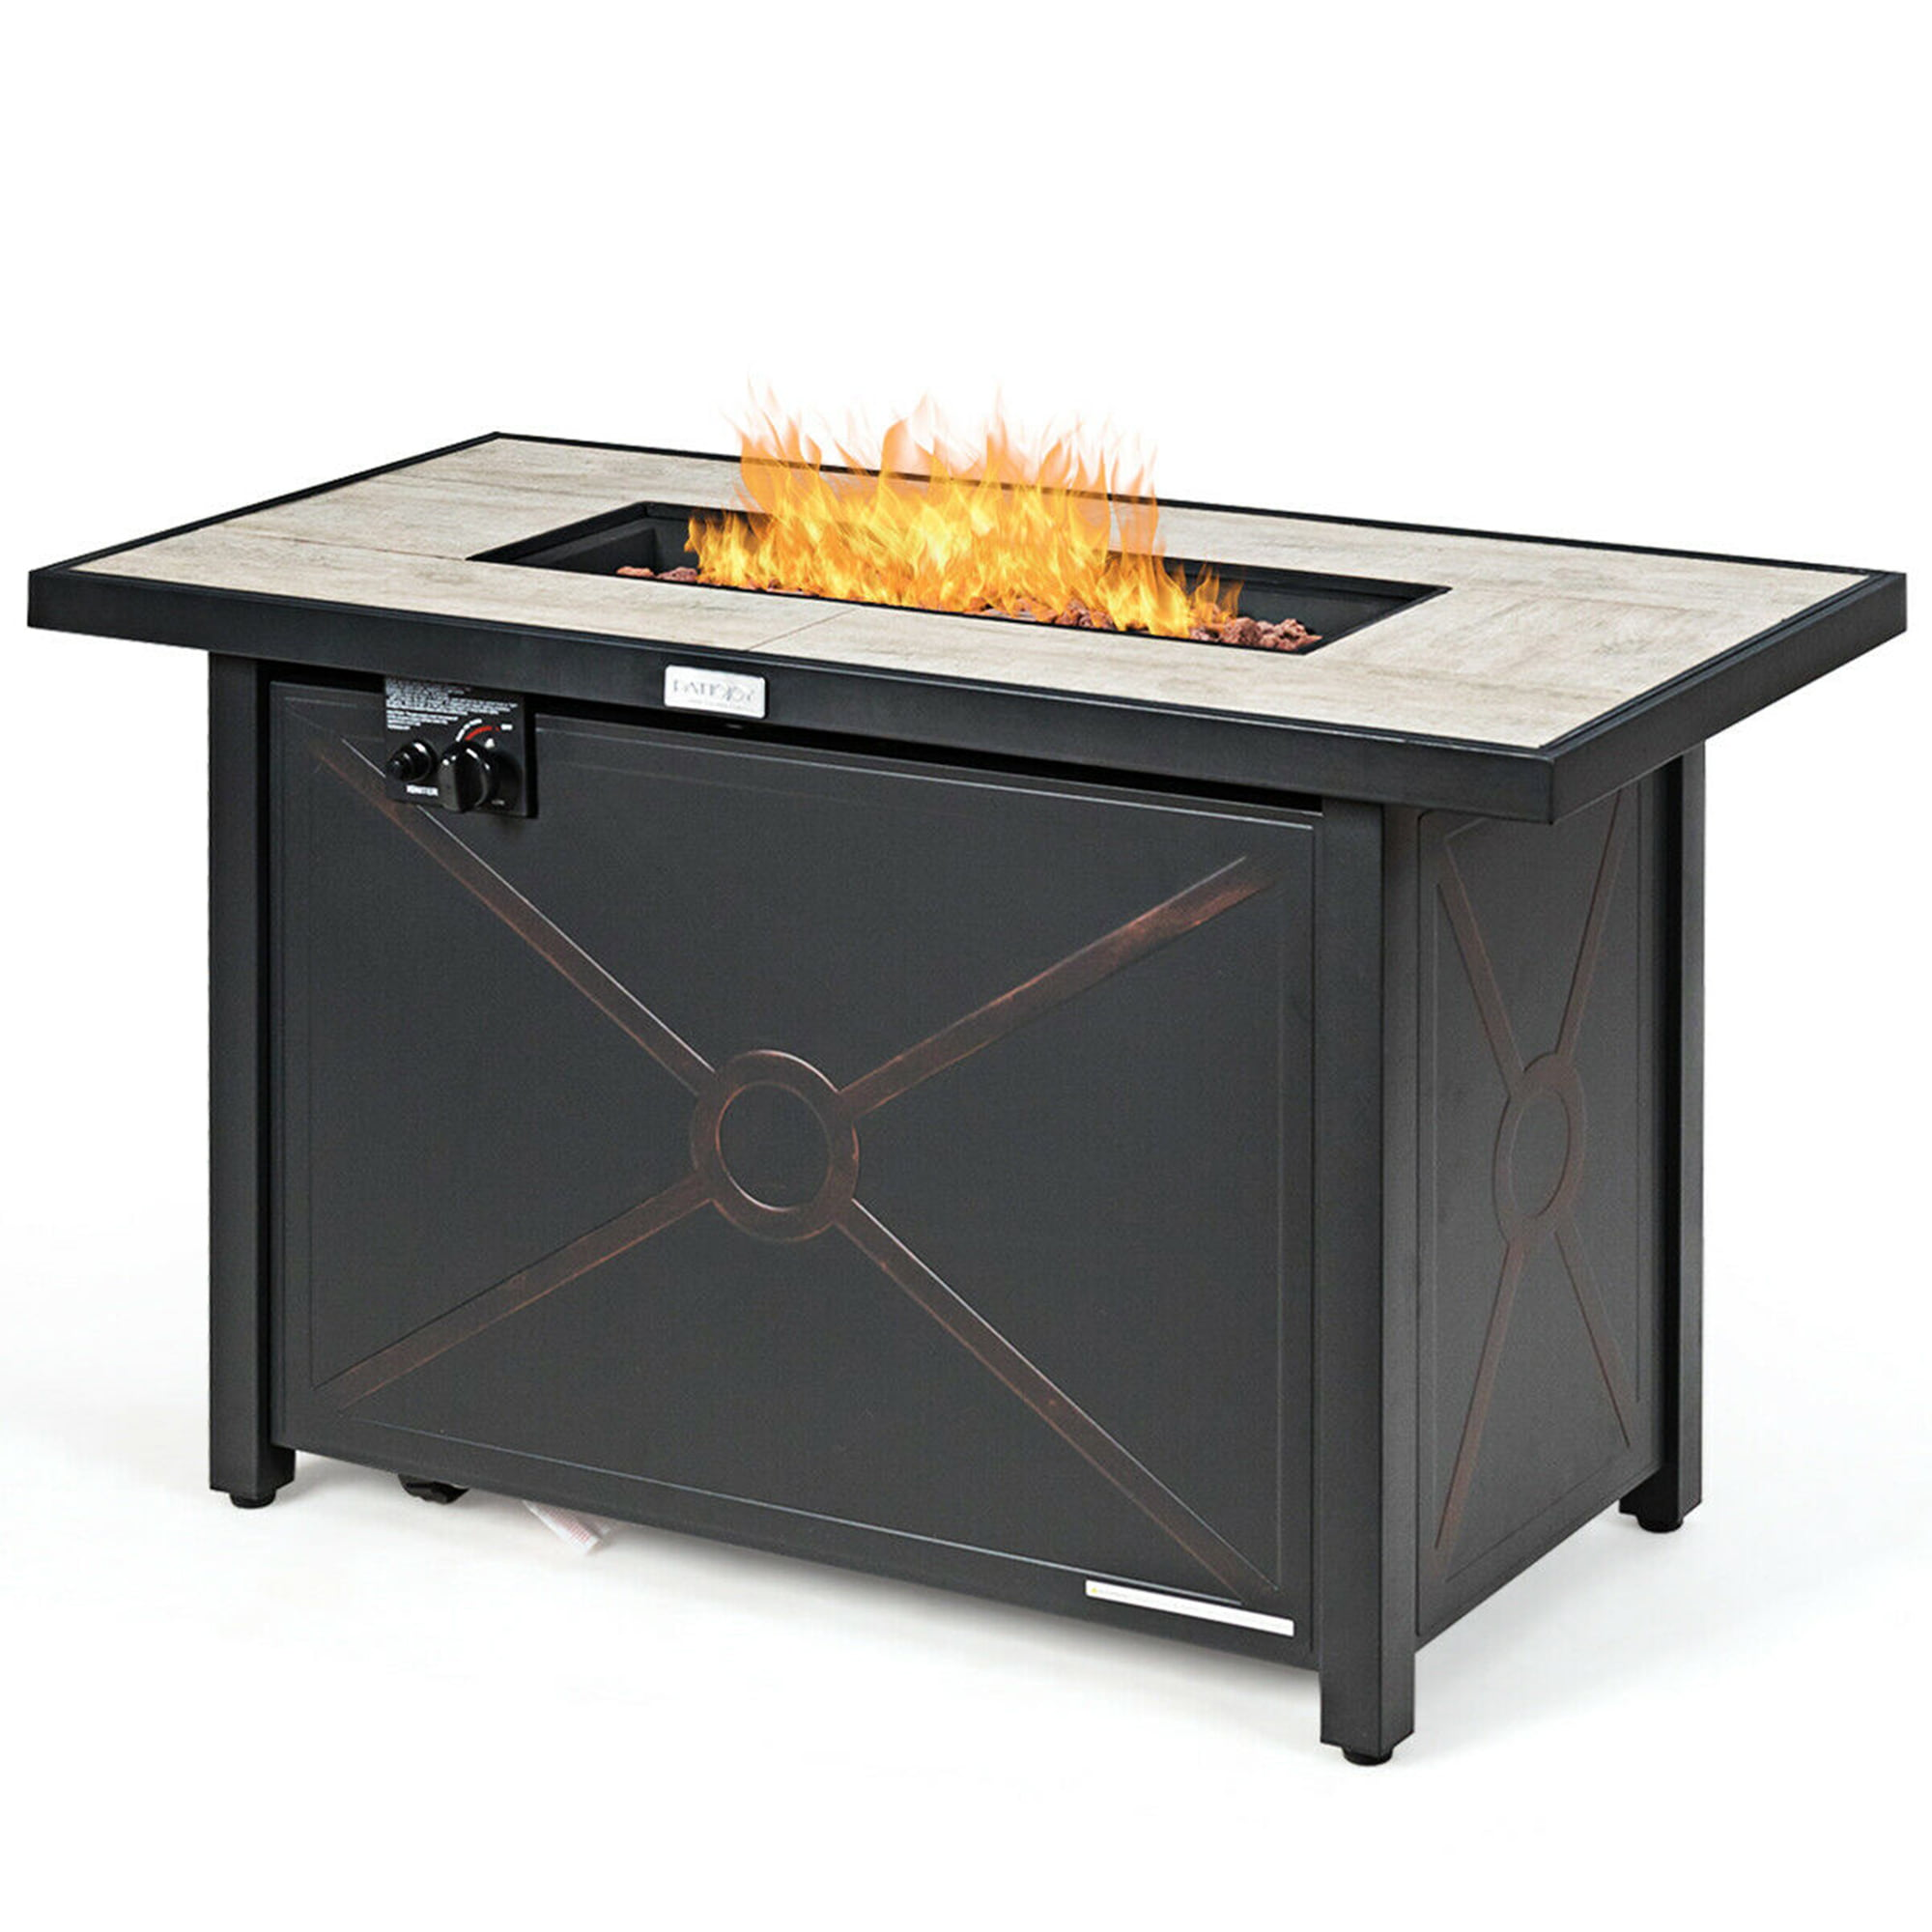 Propane Fire Pit Table With Waterproof Cover 60 000 Btu Happygrill Patio Gas Fire Pit Outdoor Backyard Gas Burner Stove Fire Table Outdoor Heating Fire Tables